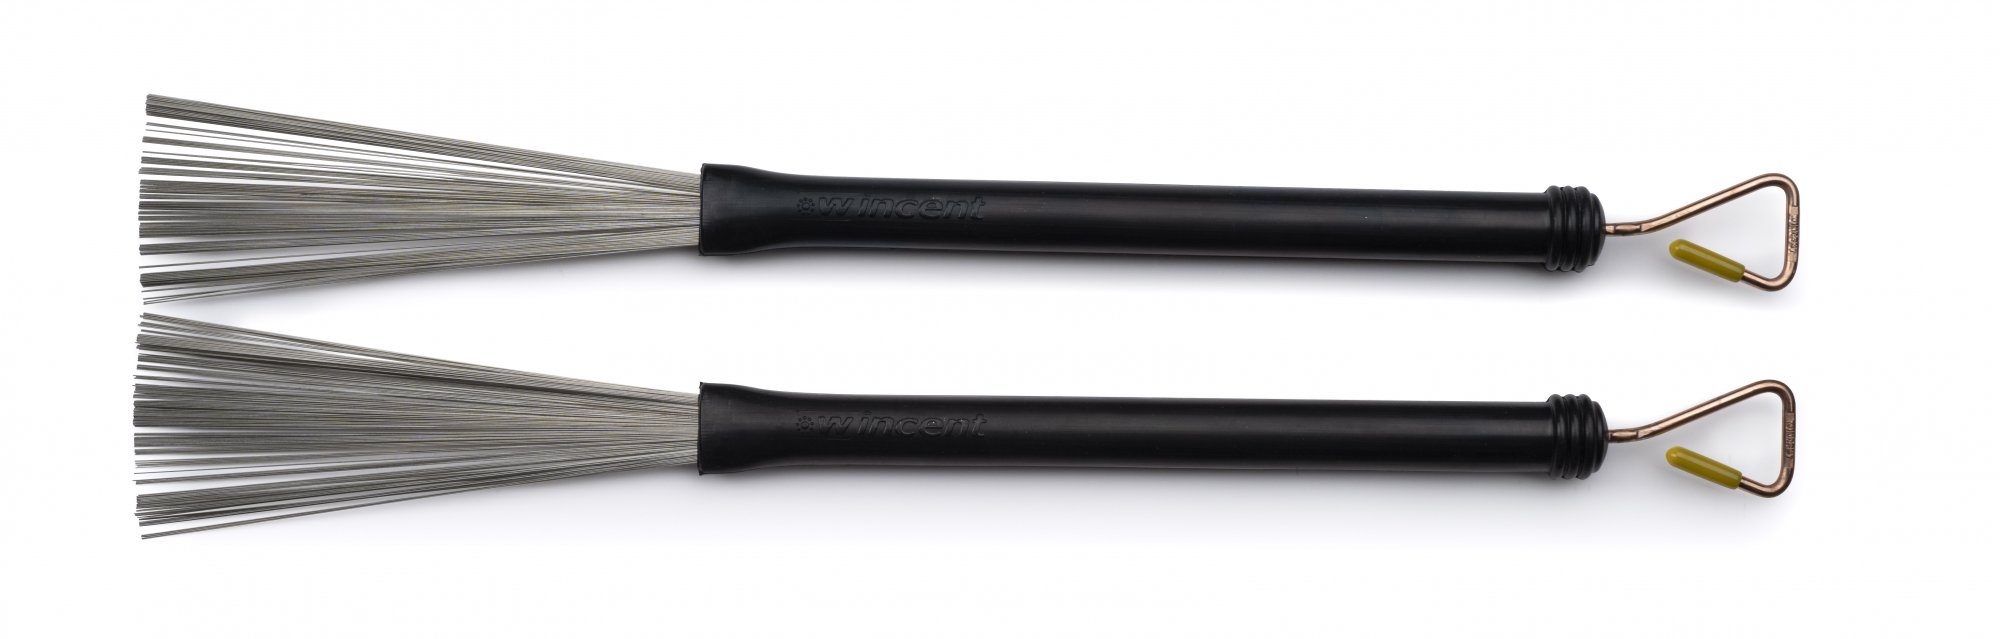 Wincent W29L Pro Brush Light Steel Wire Brushes